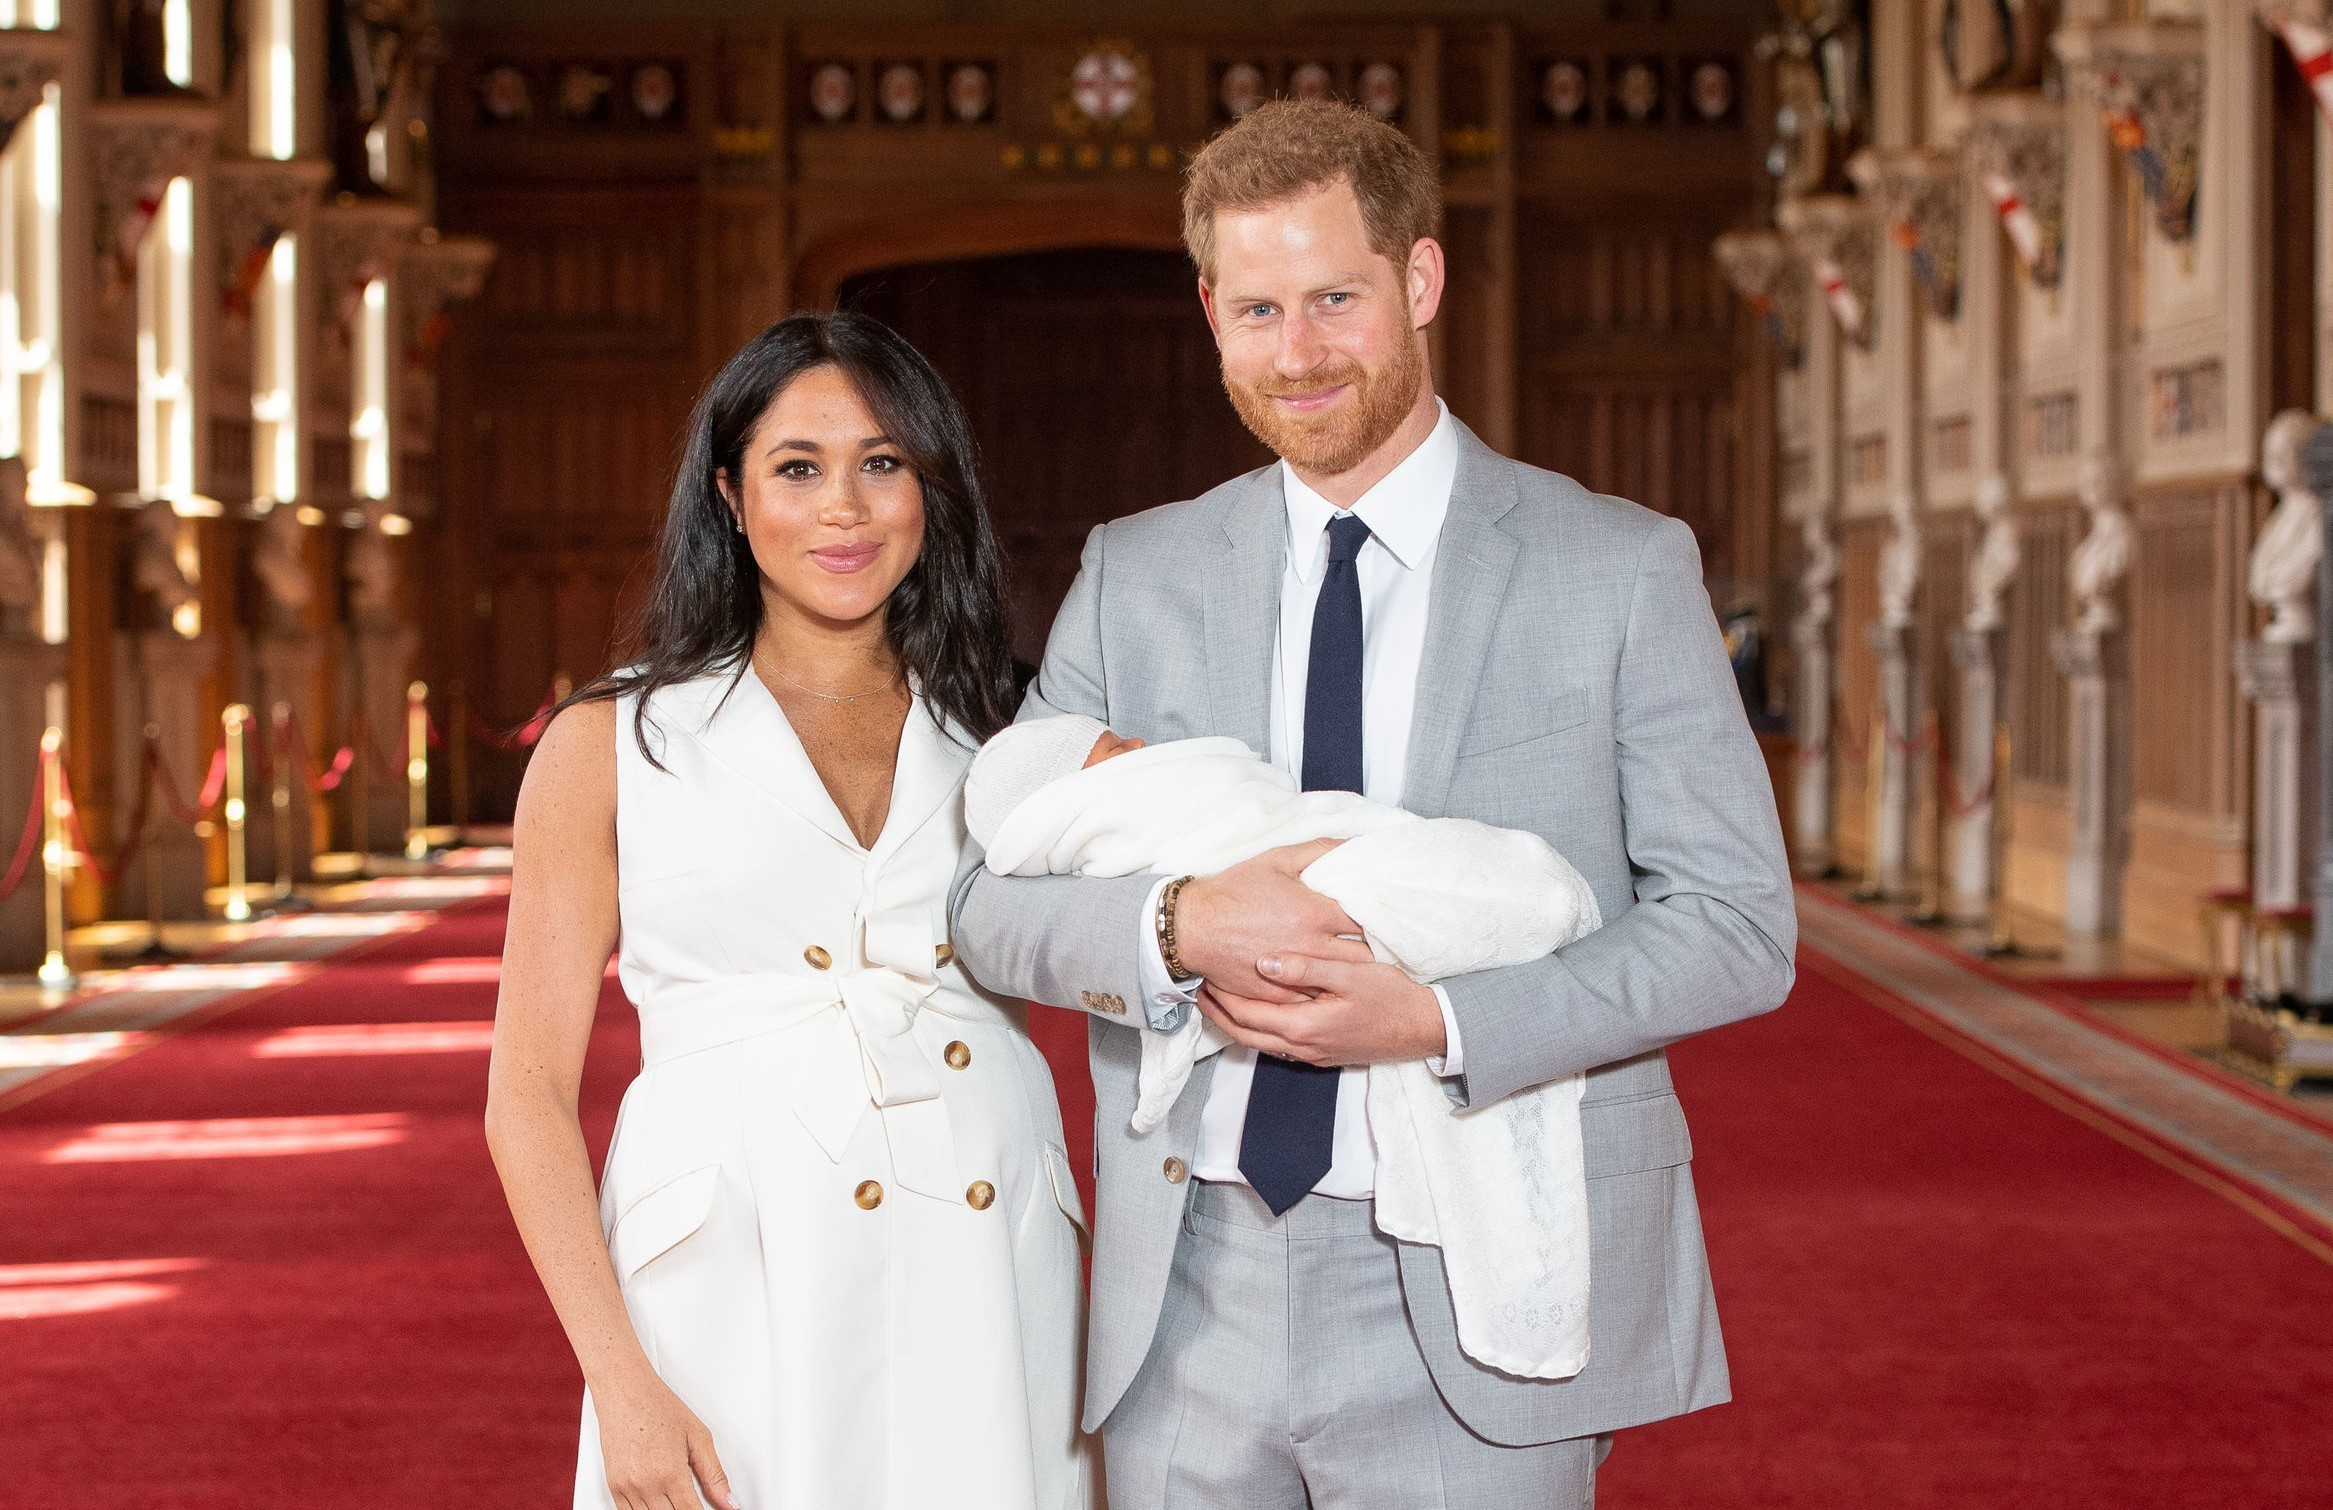 BABY: The DUke and Duchess of Sussex with Baby Archie, who was born on Monday. Pic. PA Wire